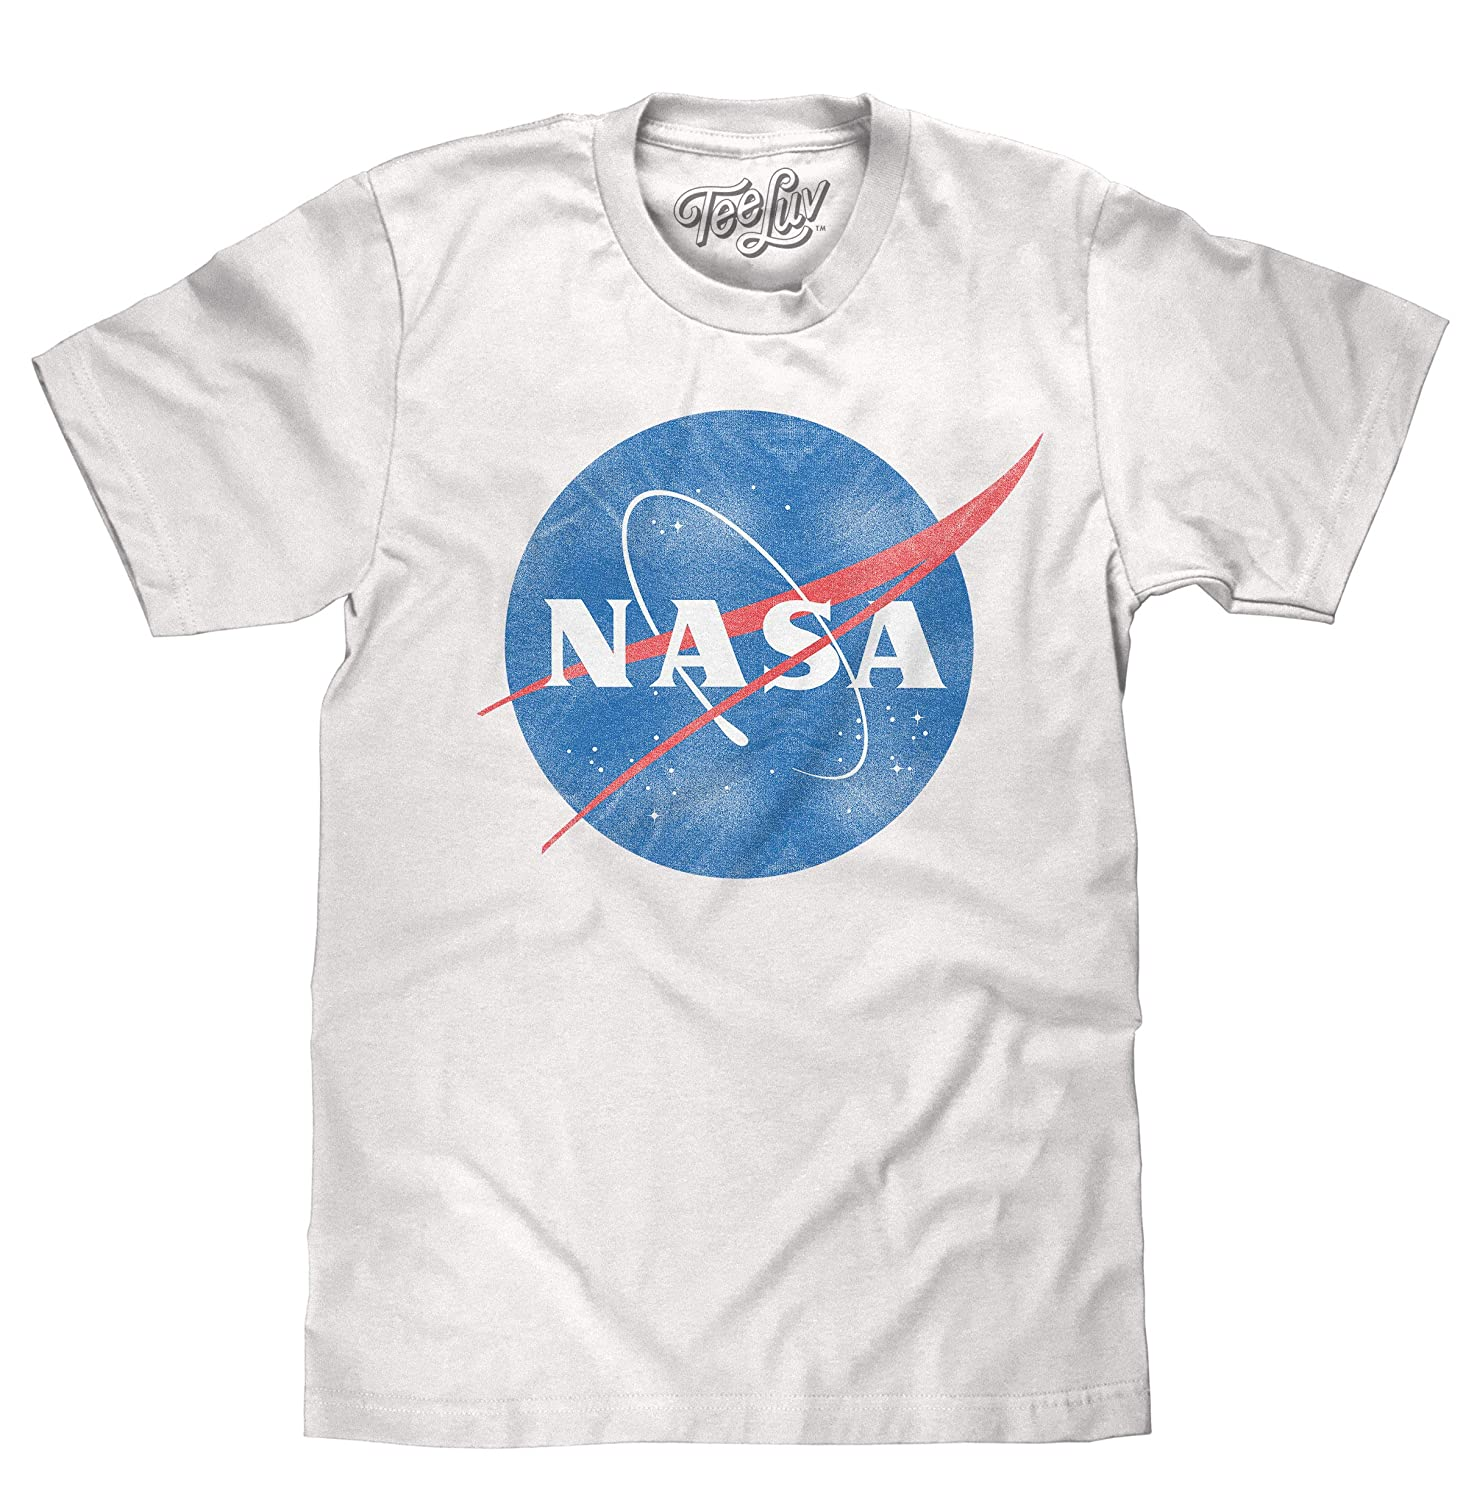 NASA DISTRESSED LOGO Licensed Adult T-Shirt All Sizes